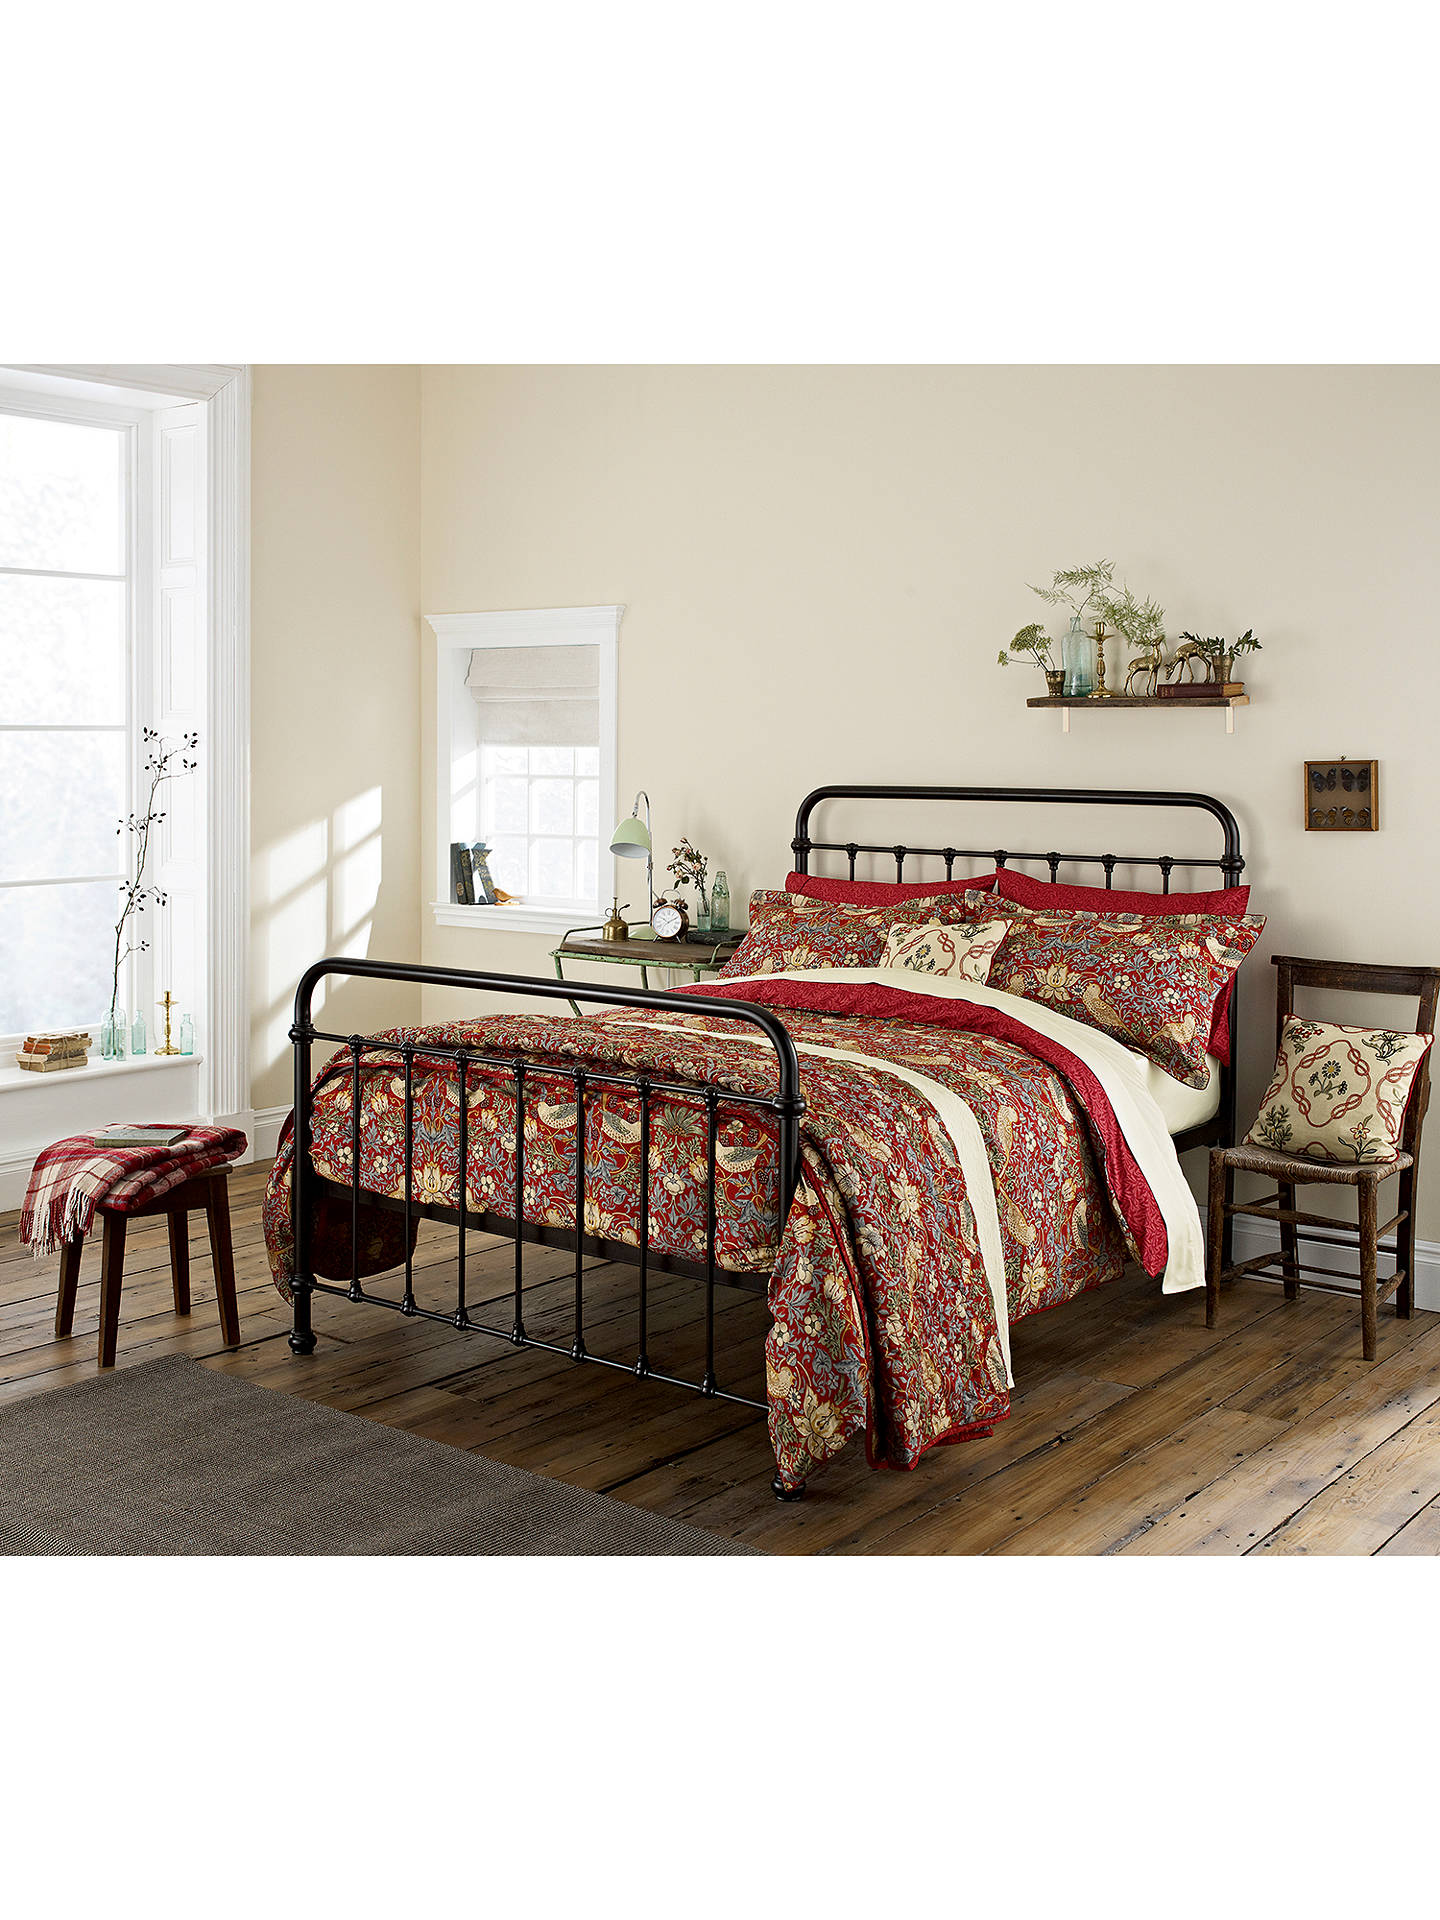 BuyMorris & Co. Strawberry Thief Bedspread, Red Online at johnlewis.com